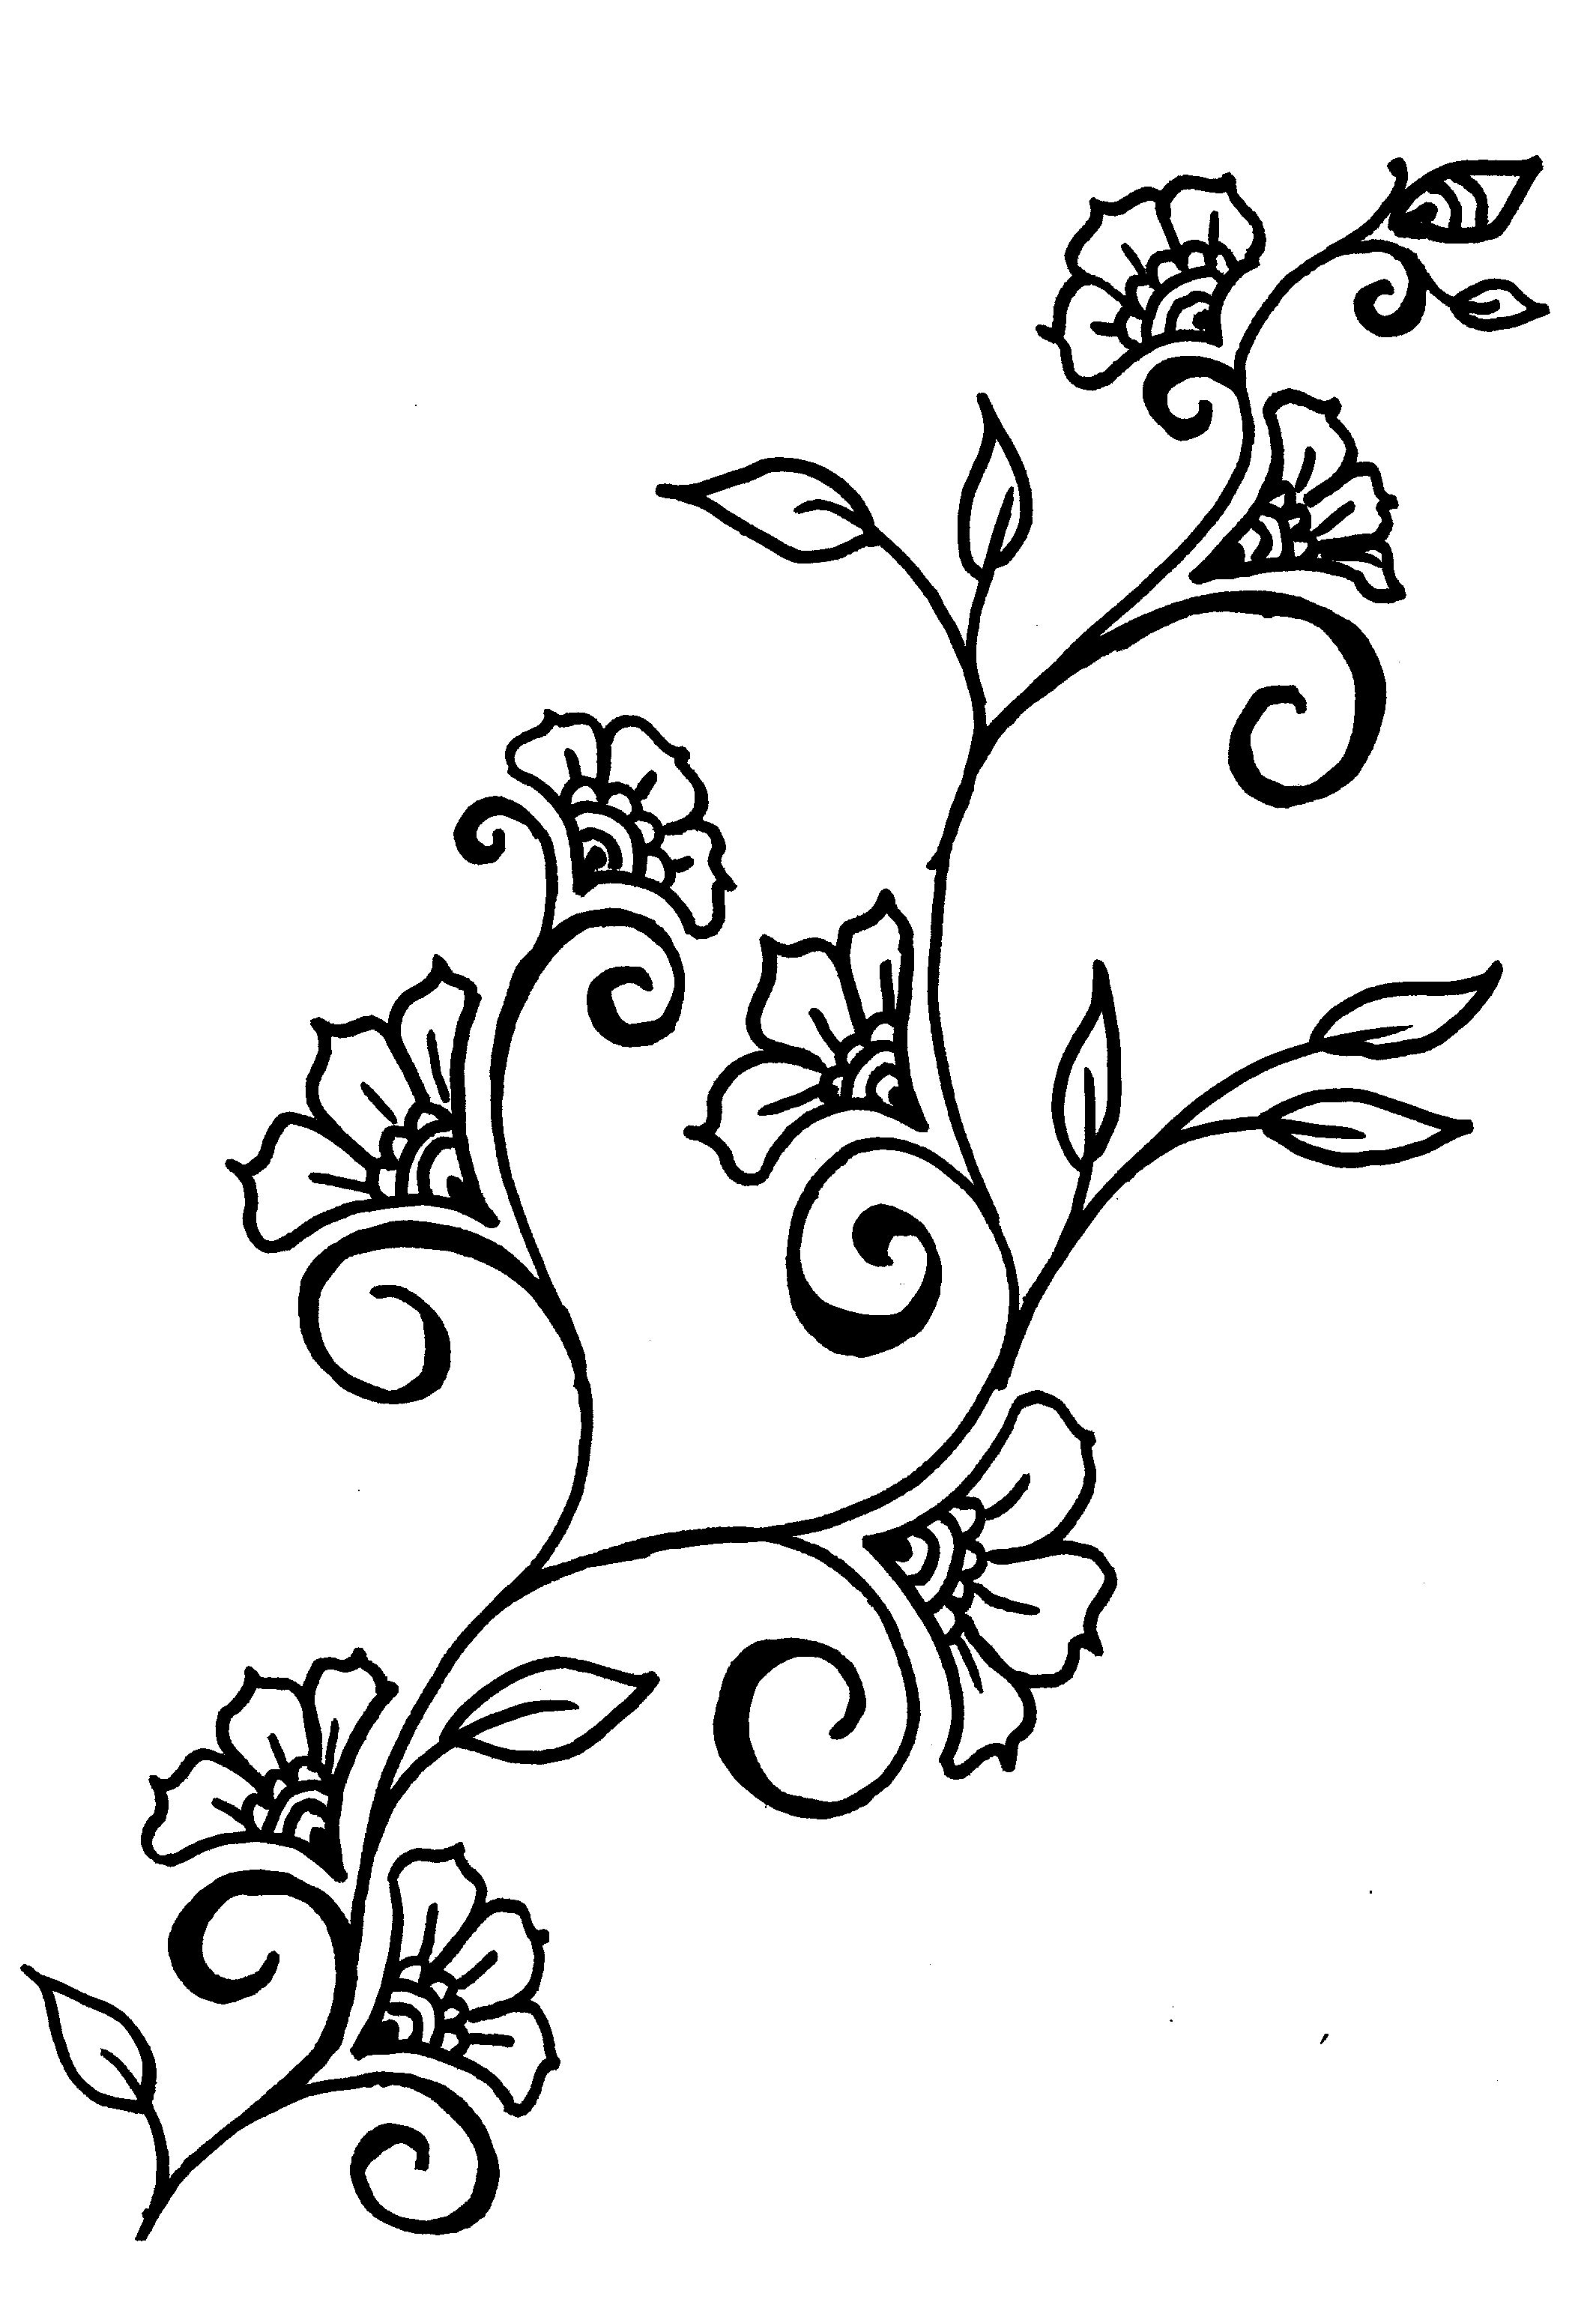 Uncategorized Easy To Draw Vines drawings of rosd vines henna inspired design ideas leaves and ideas